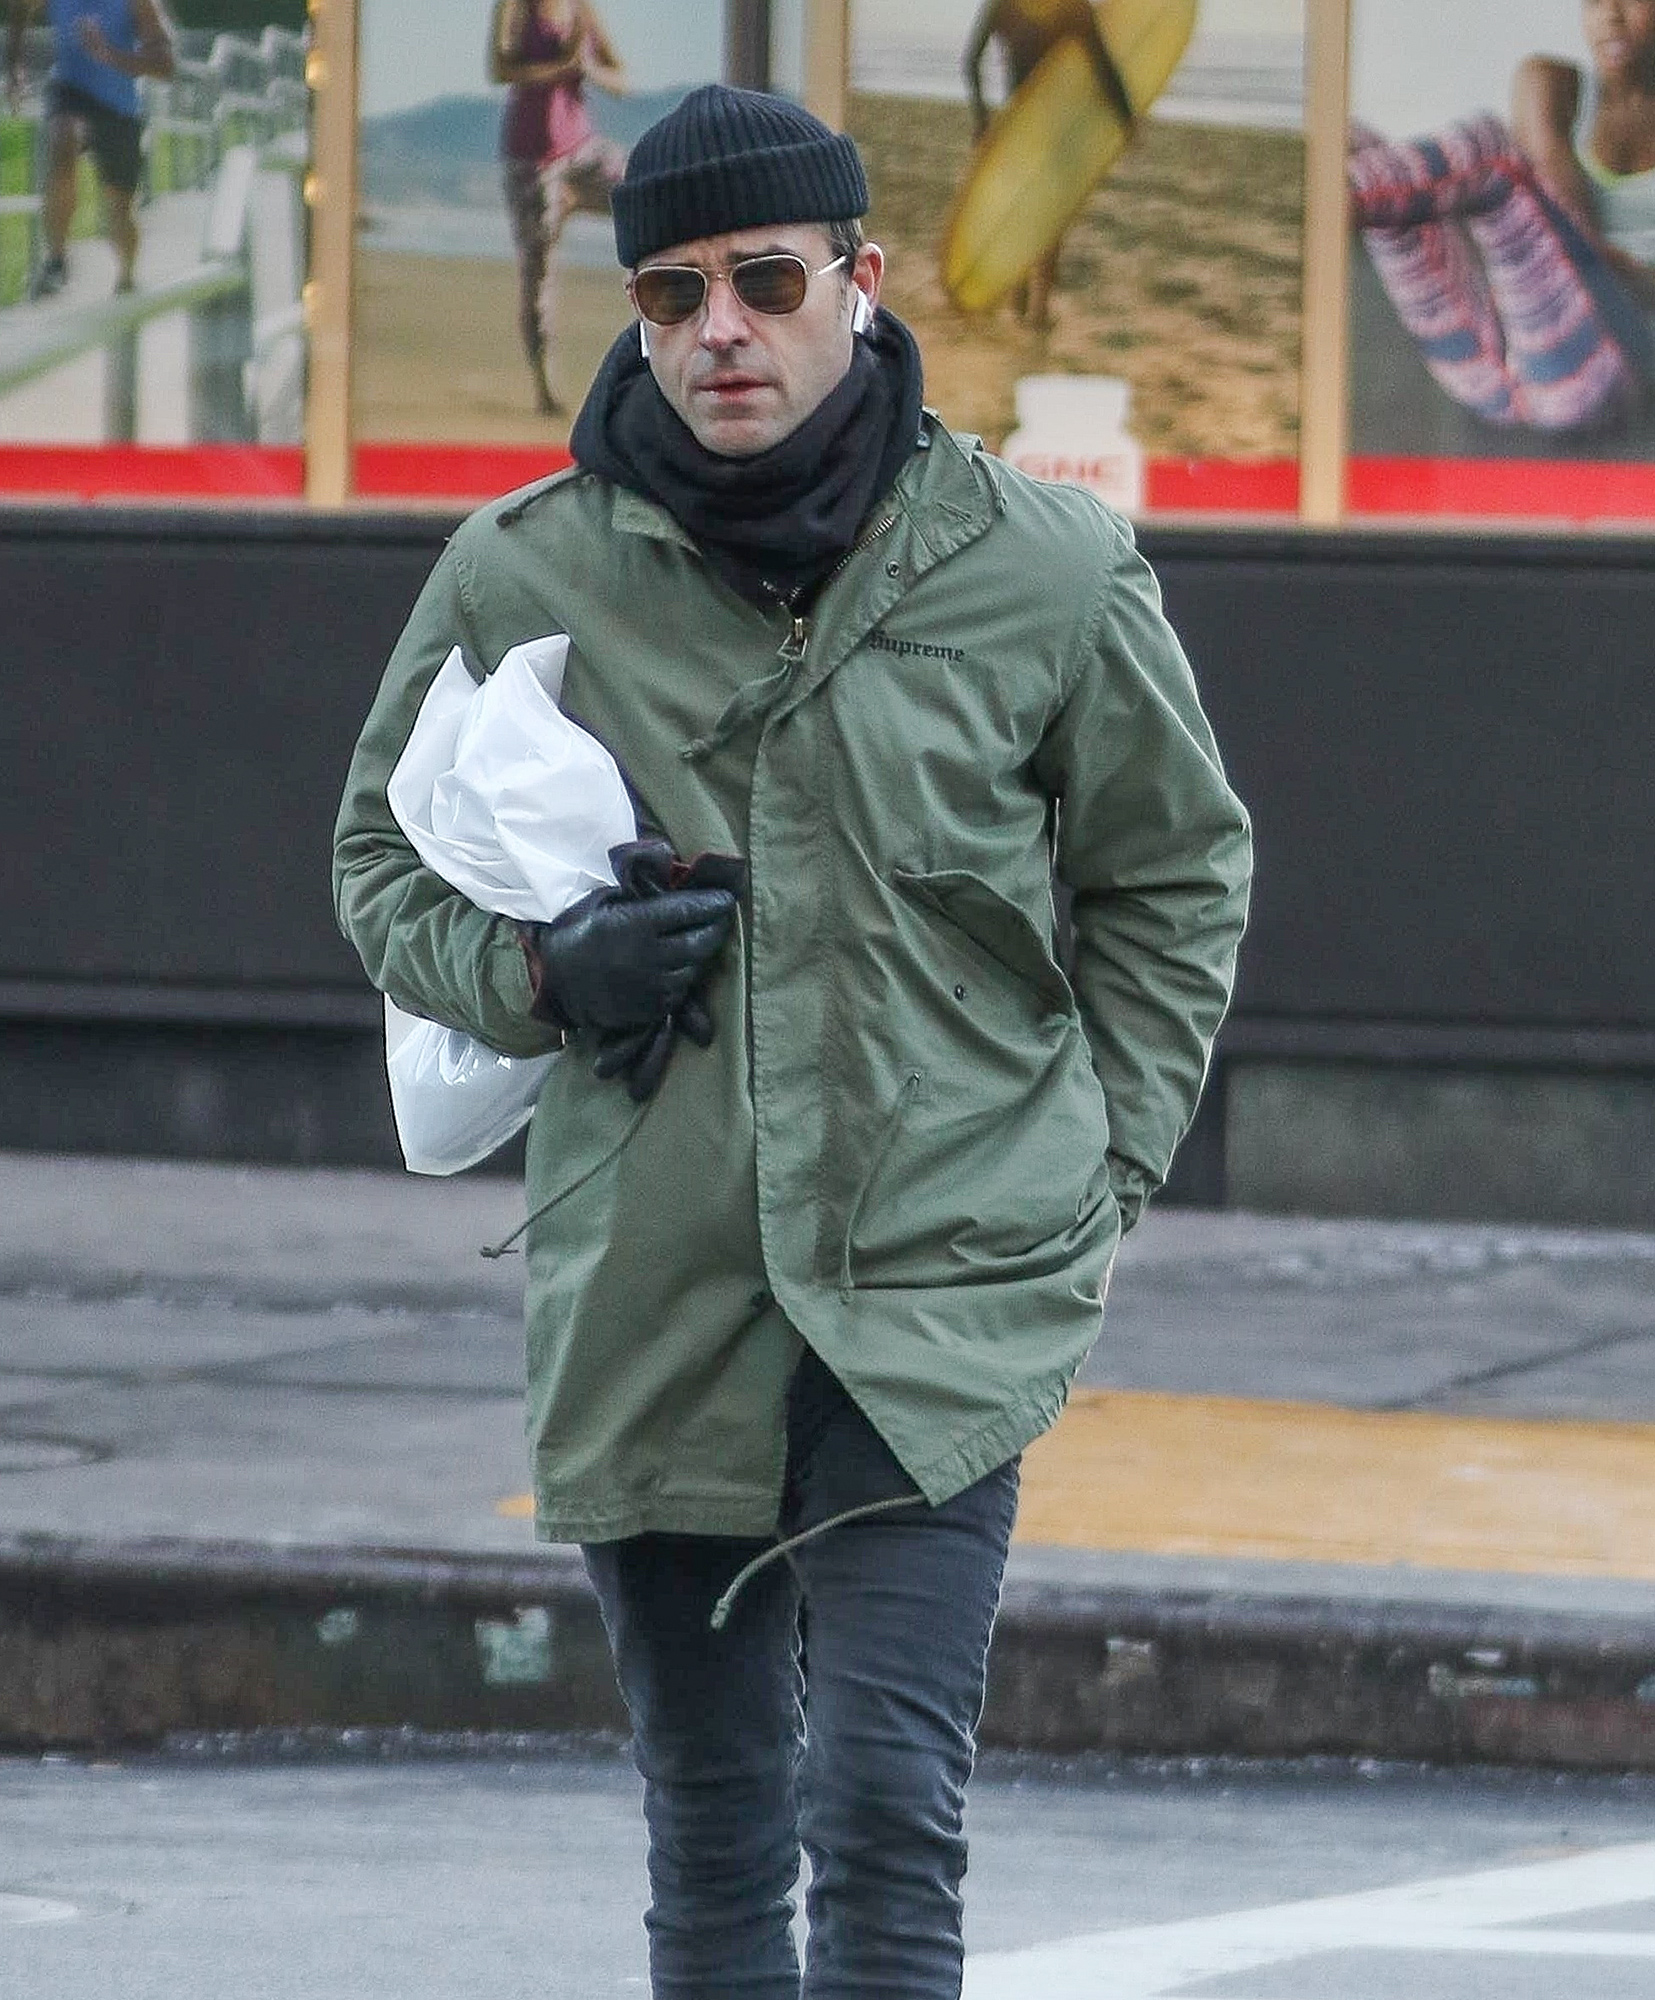 *EXCLUSIVE* Justin Theroux still wearing wedding ring amid break up rumors